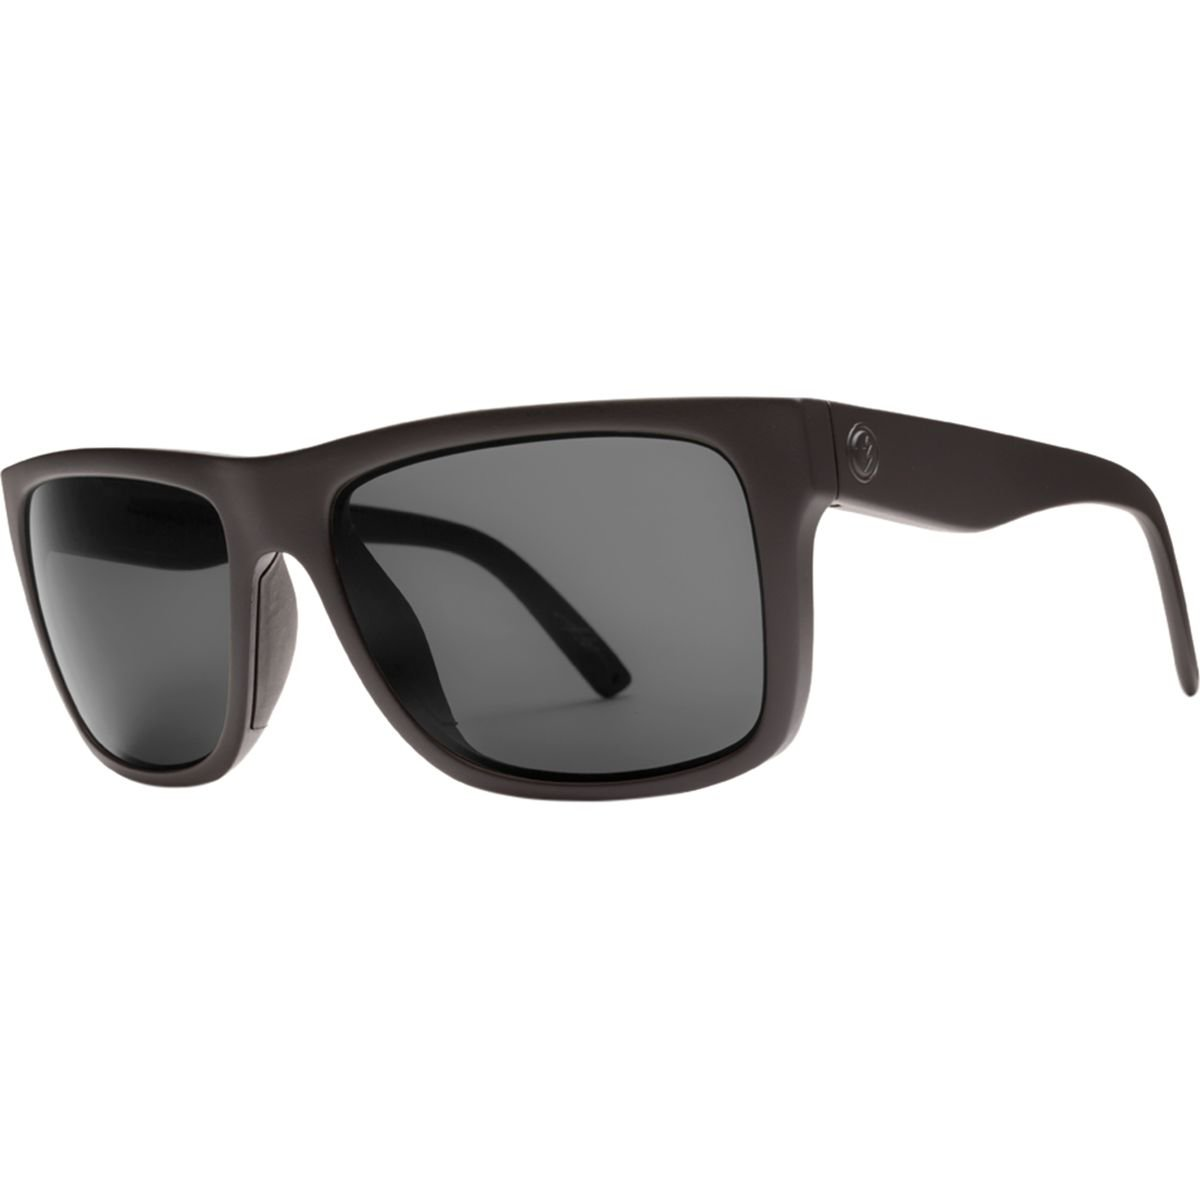 Electric Swingarm S Rectangular Sunglasses, Matte Black, 56 mm